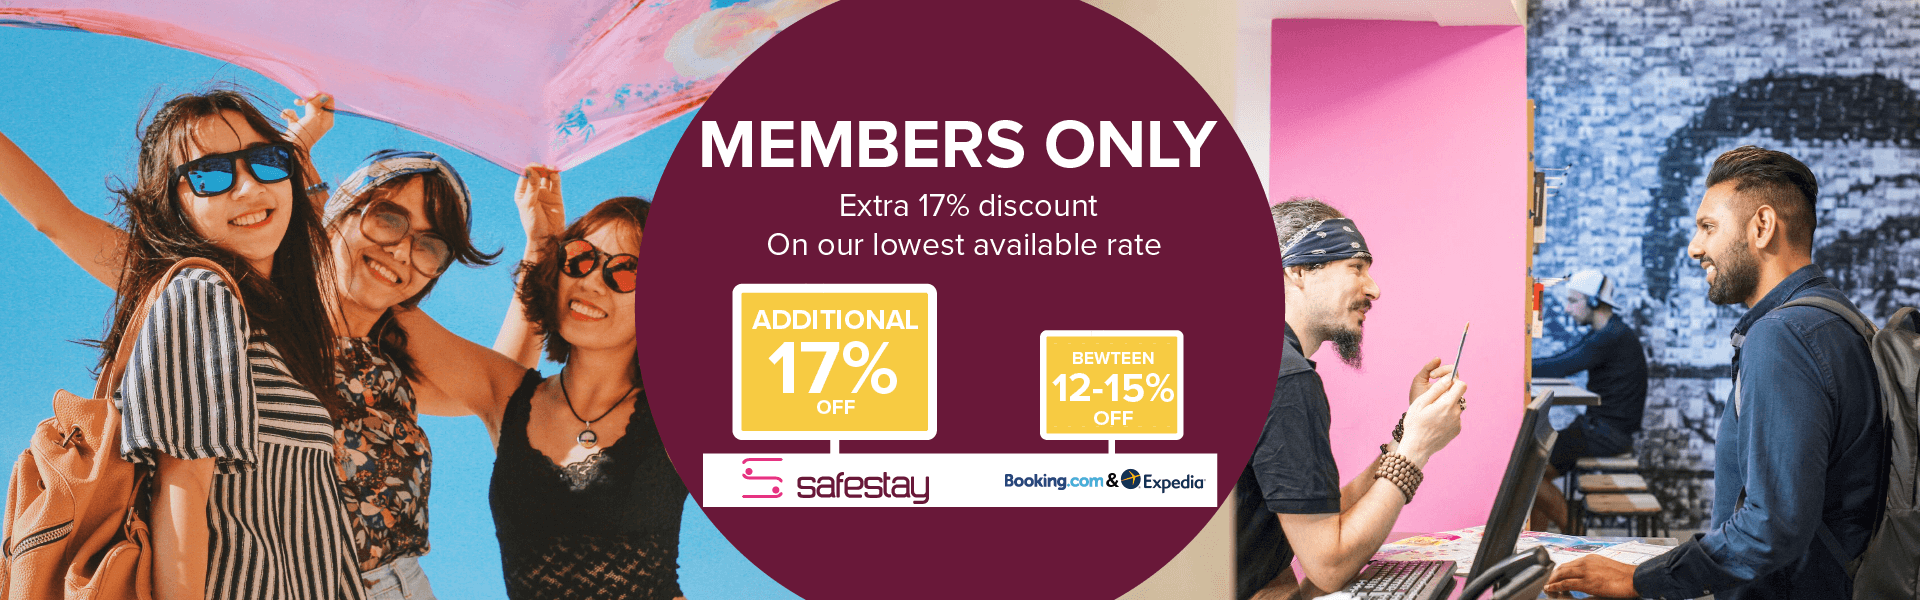 Exclusive Members Only Offer